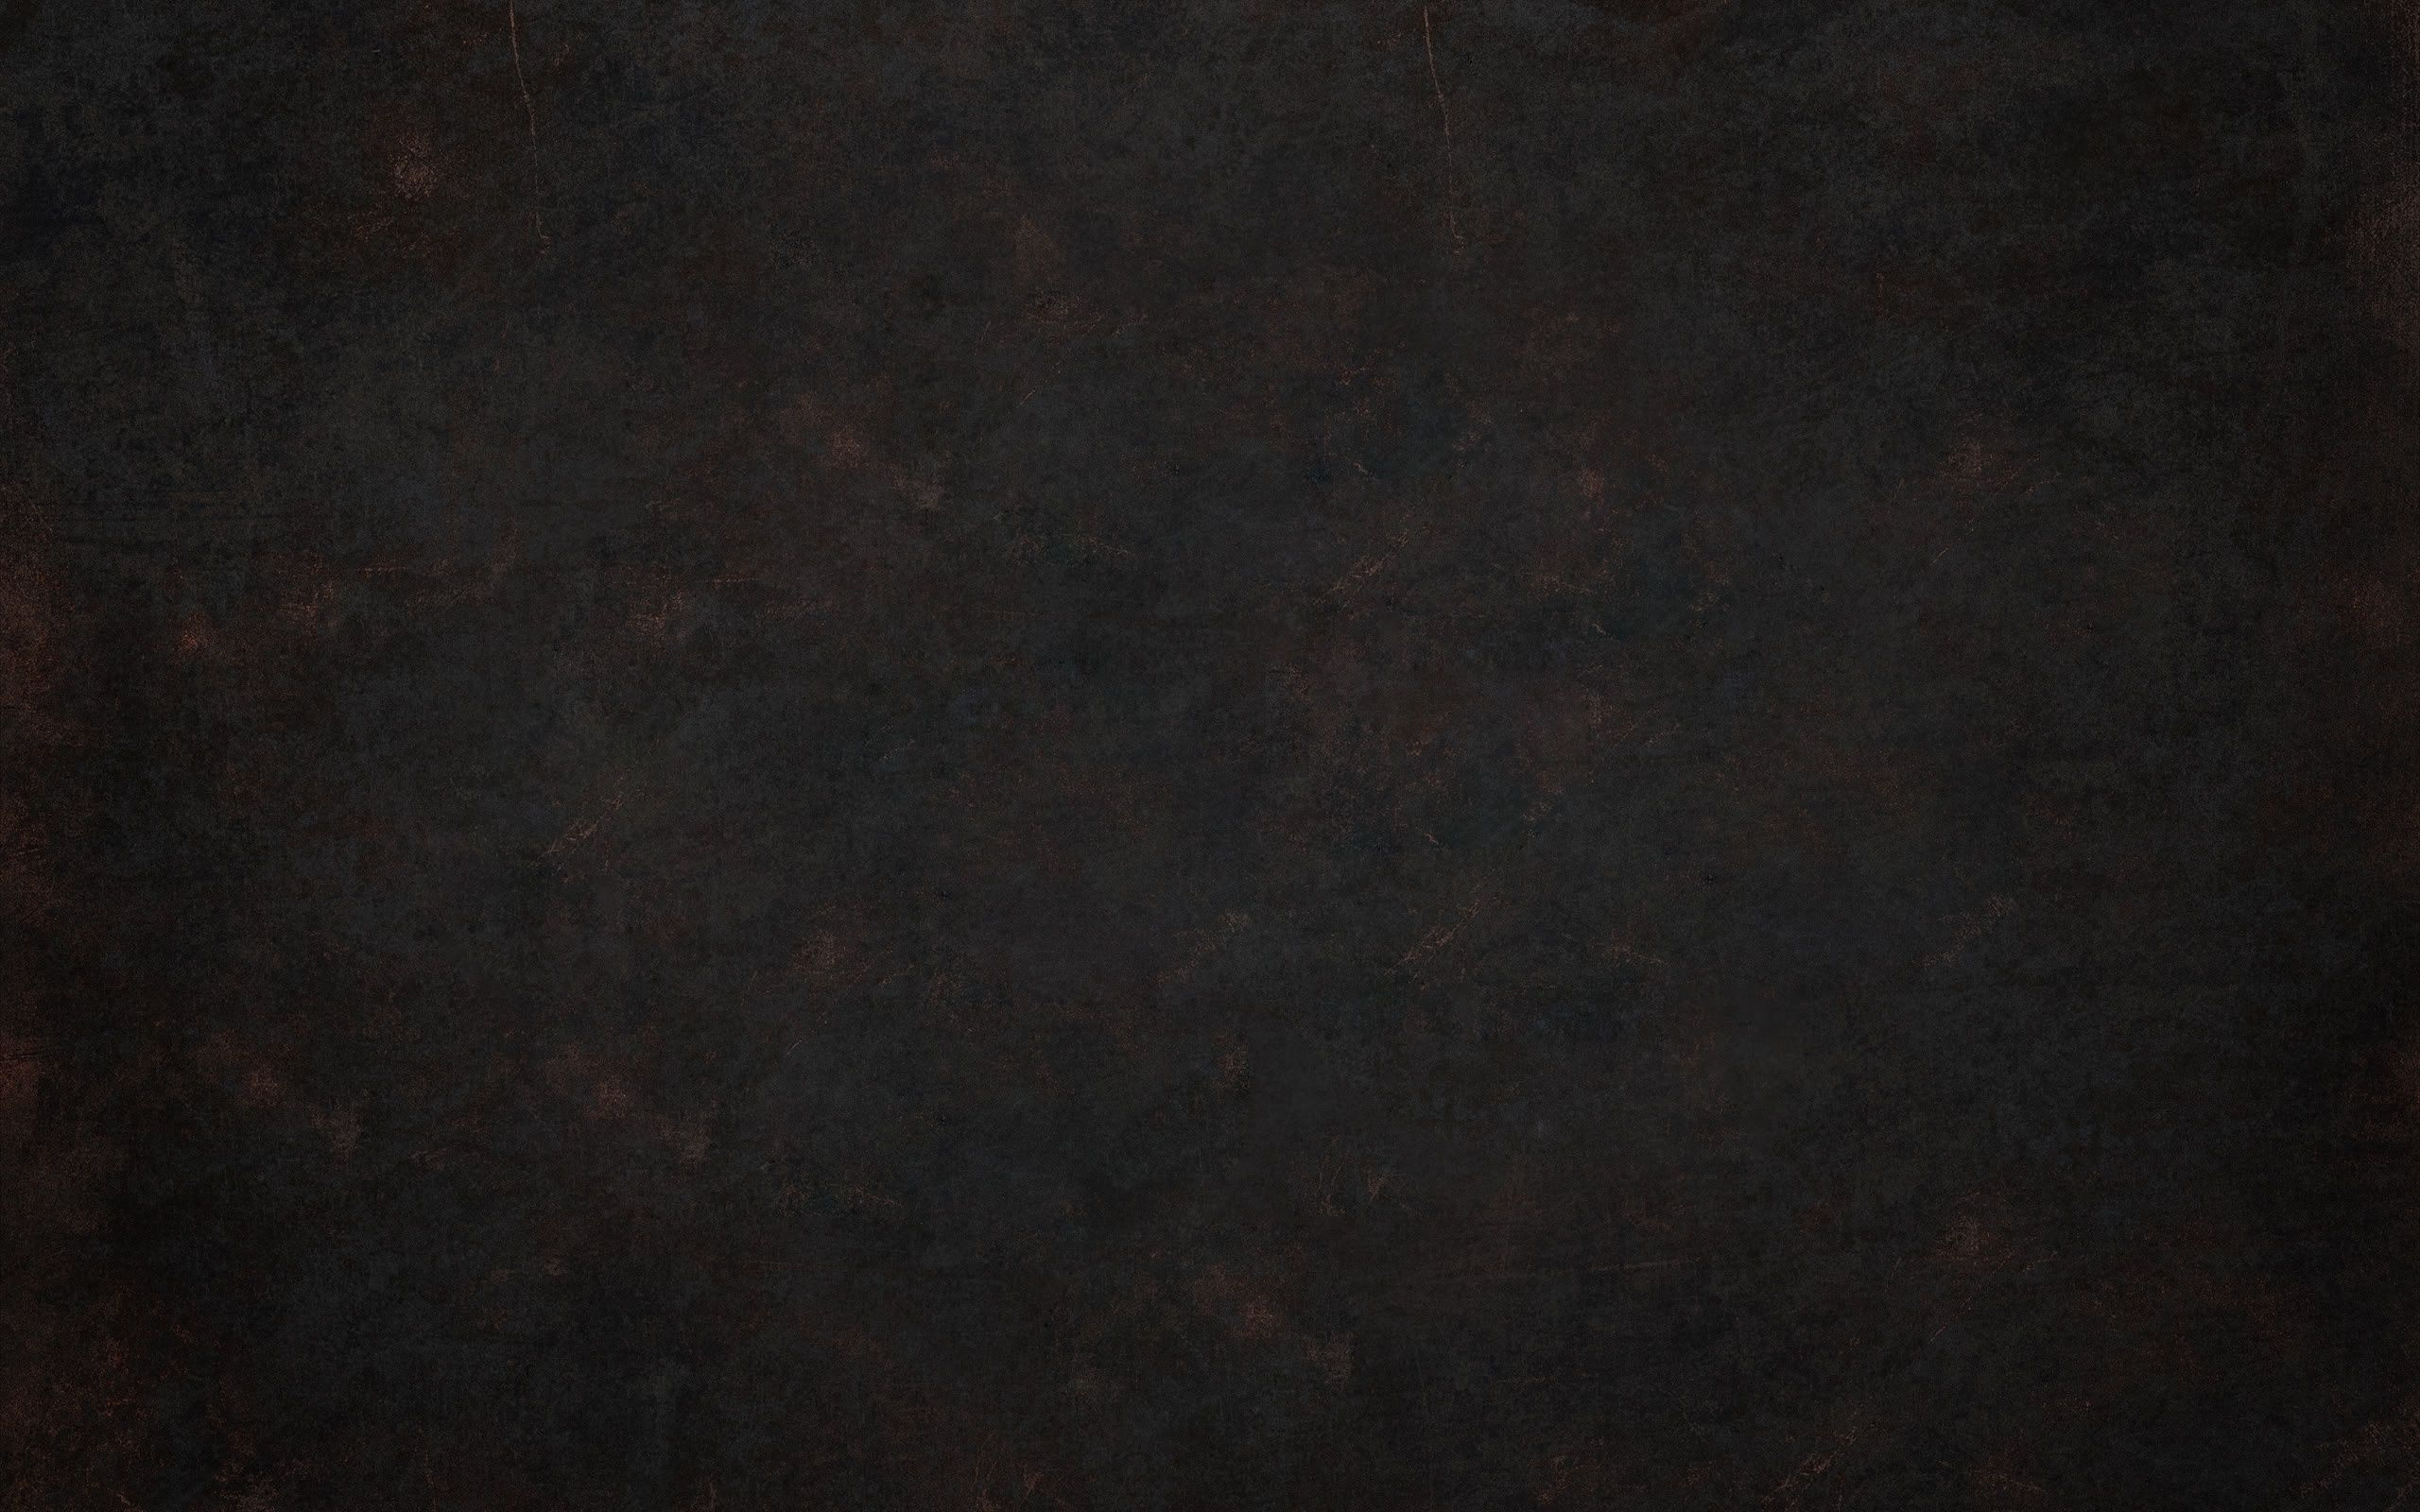 Rusty Black Steel Background | Textures | Pinterest | Steel